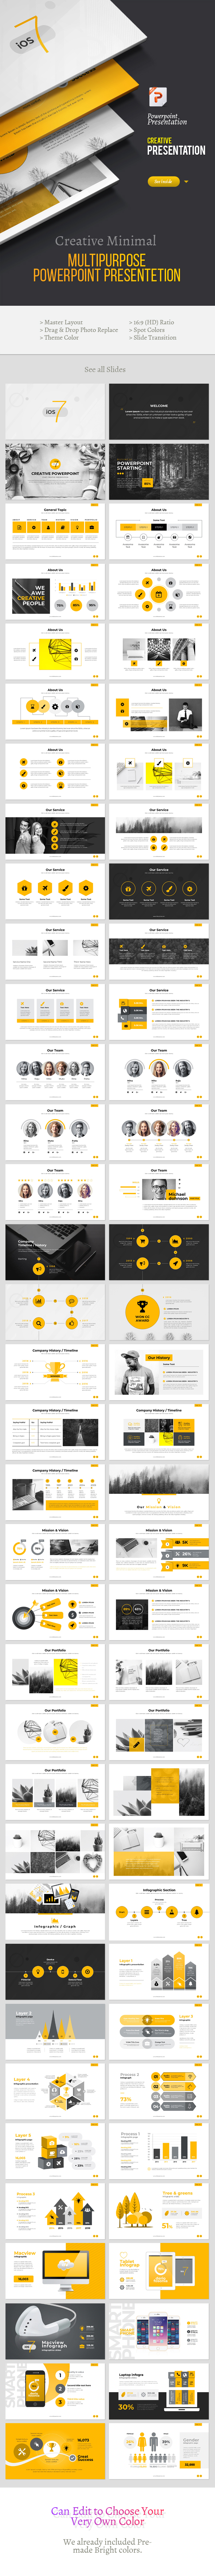 Creative Powerpoint Template - Business PowerPoint Templates